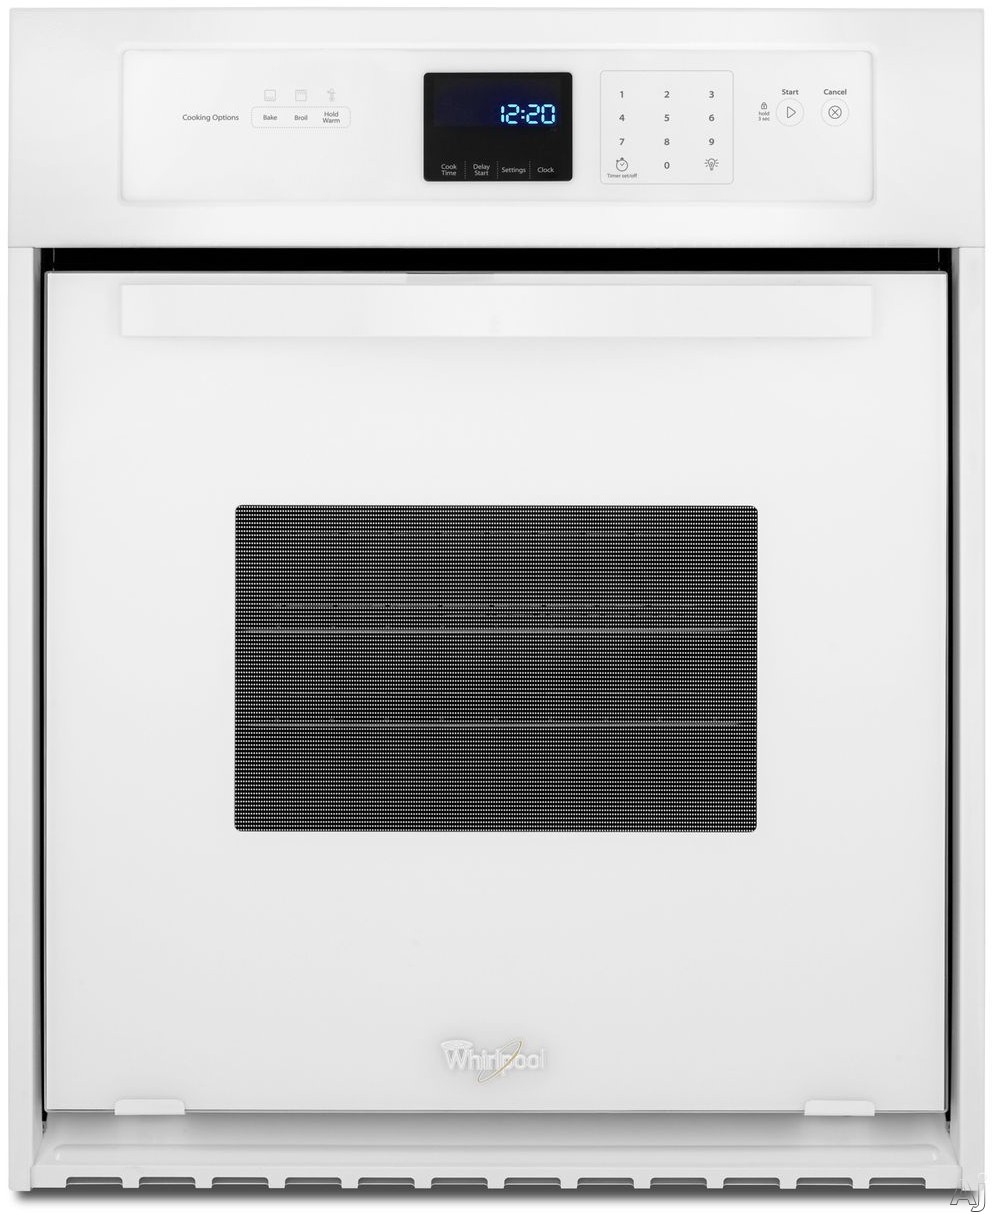 Whirlpool WOS11EM4EW 24 Inch Single Electric Wall Oven with 3.1 cu. ft. Capacity, 3600 Watt Broil Element, Dual Interior Lighting, Delay Cook Setting, Star-K Certified Sabbath Mode, ADA Compliant and Keep Warm Setting: White